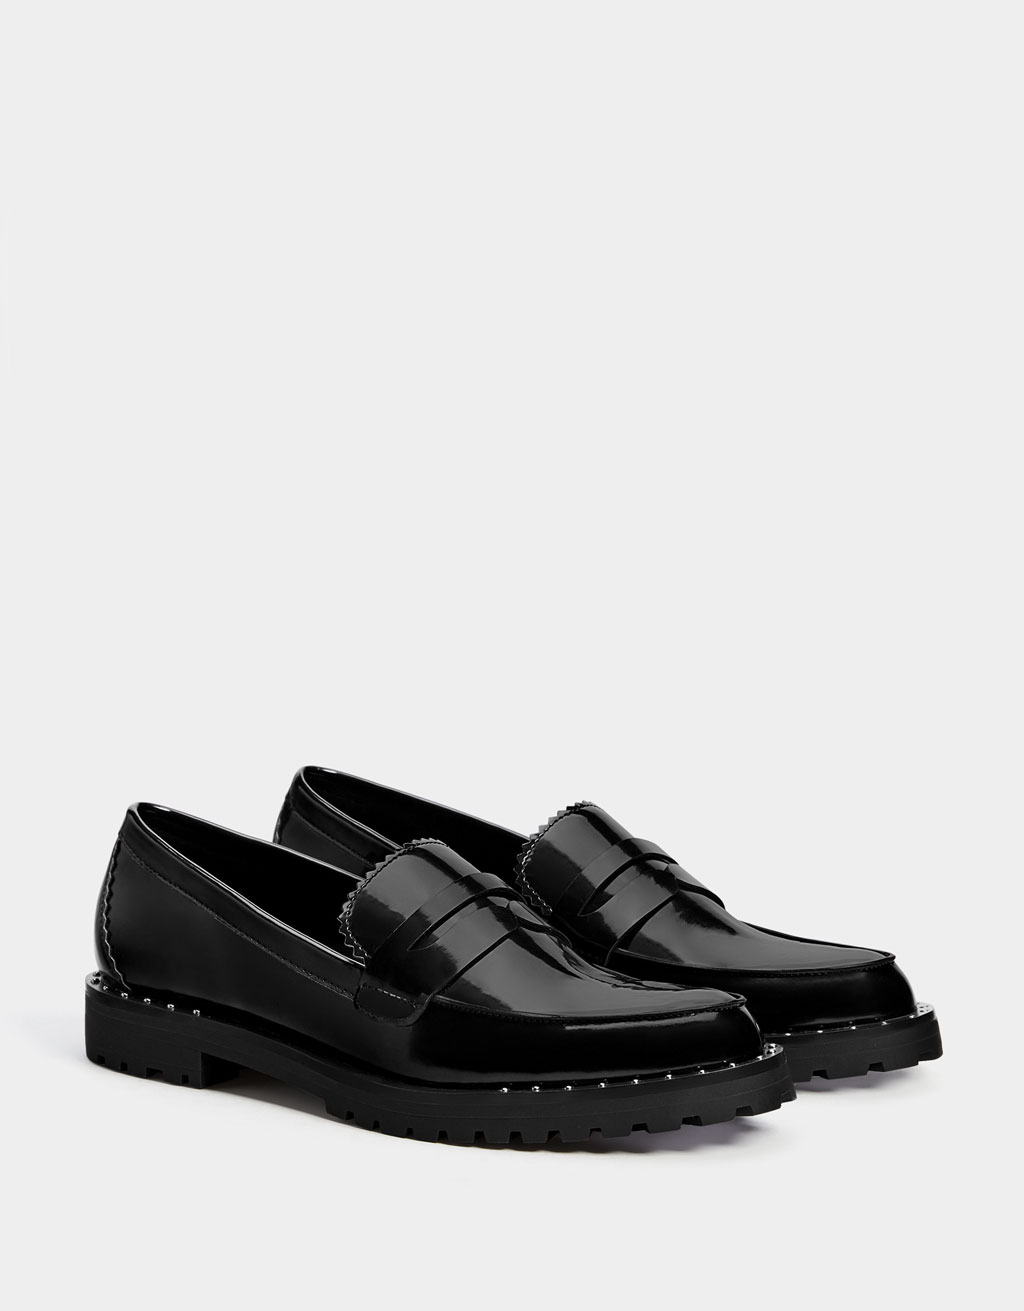 9cc380bd2607 Black studded penny loafers Black studded penny loafers ...